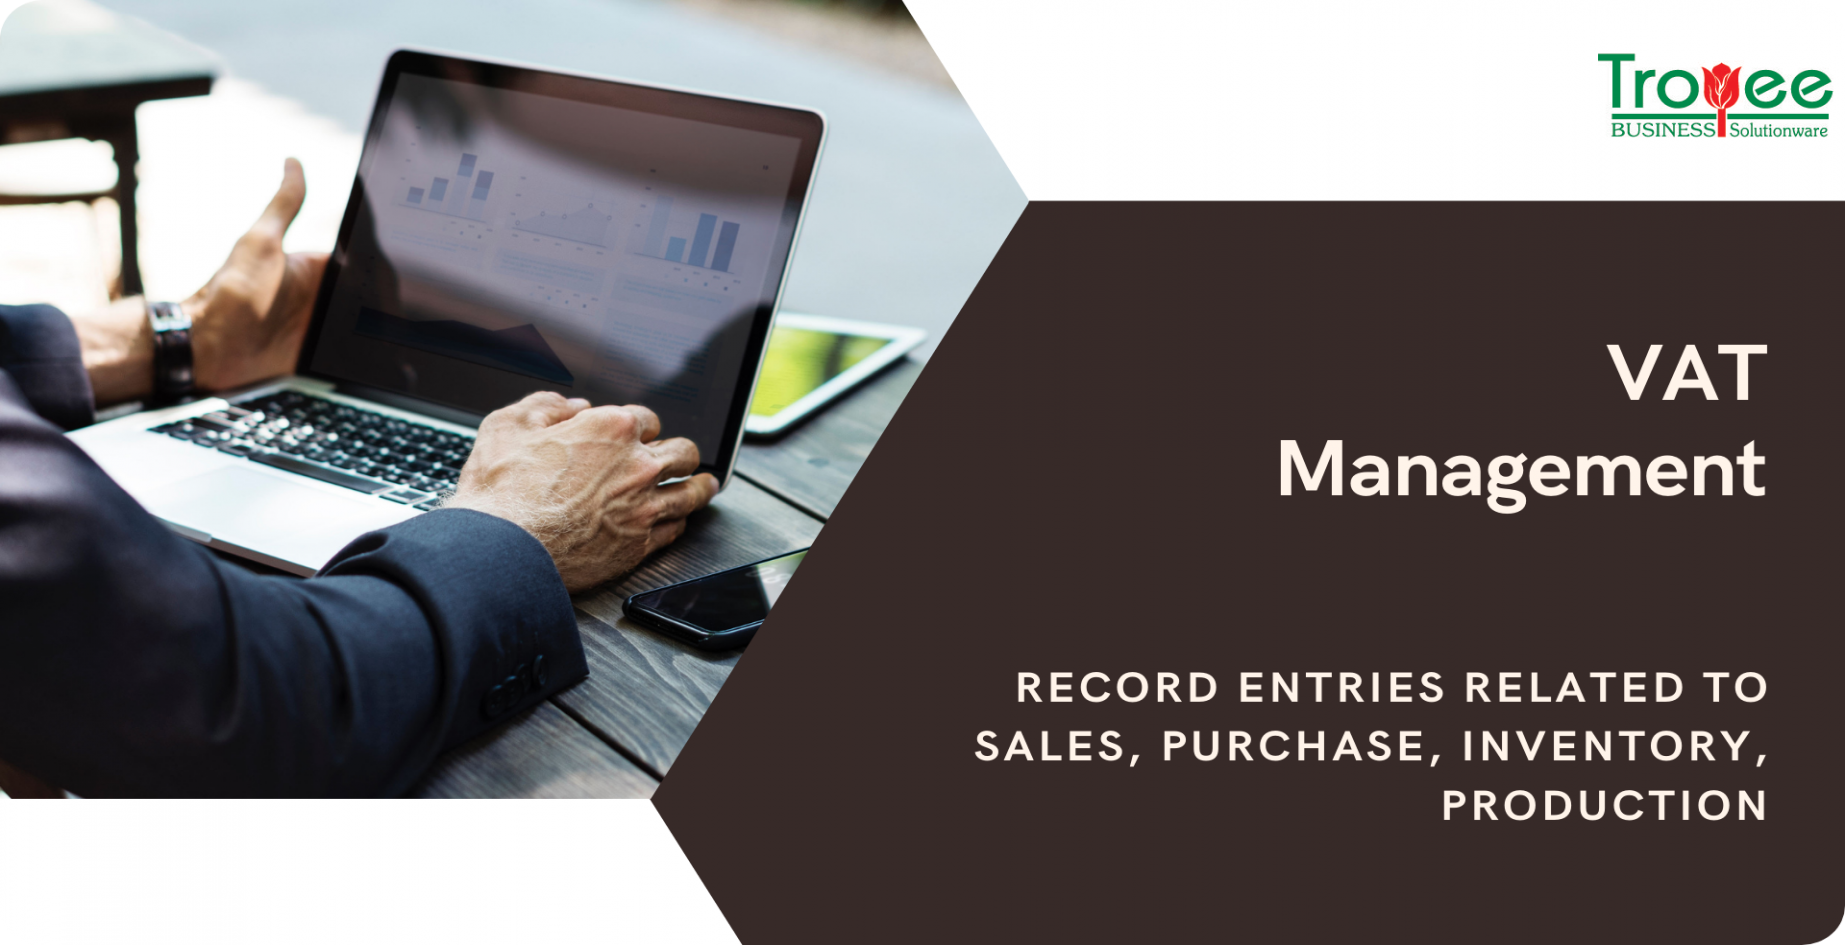 Accounting-Inventory-Manufacturing & MIS integrated Software